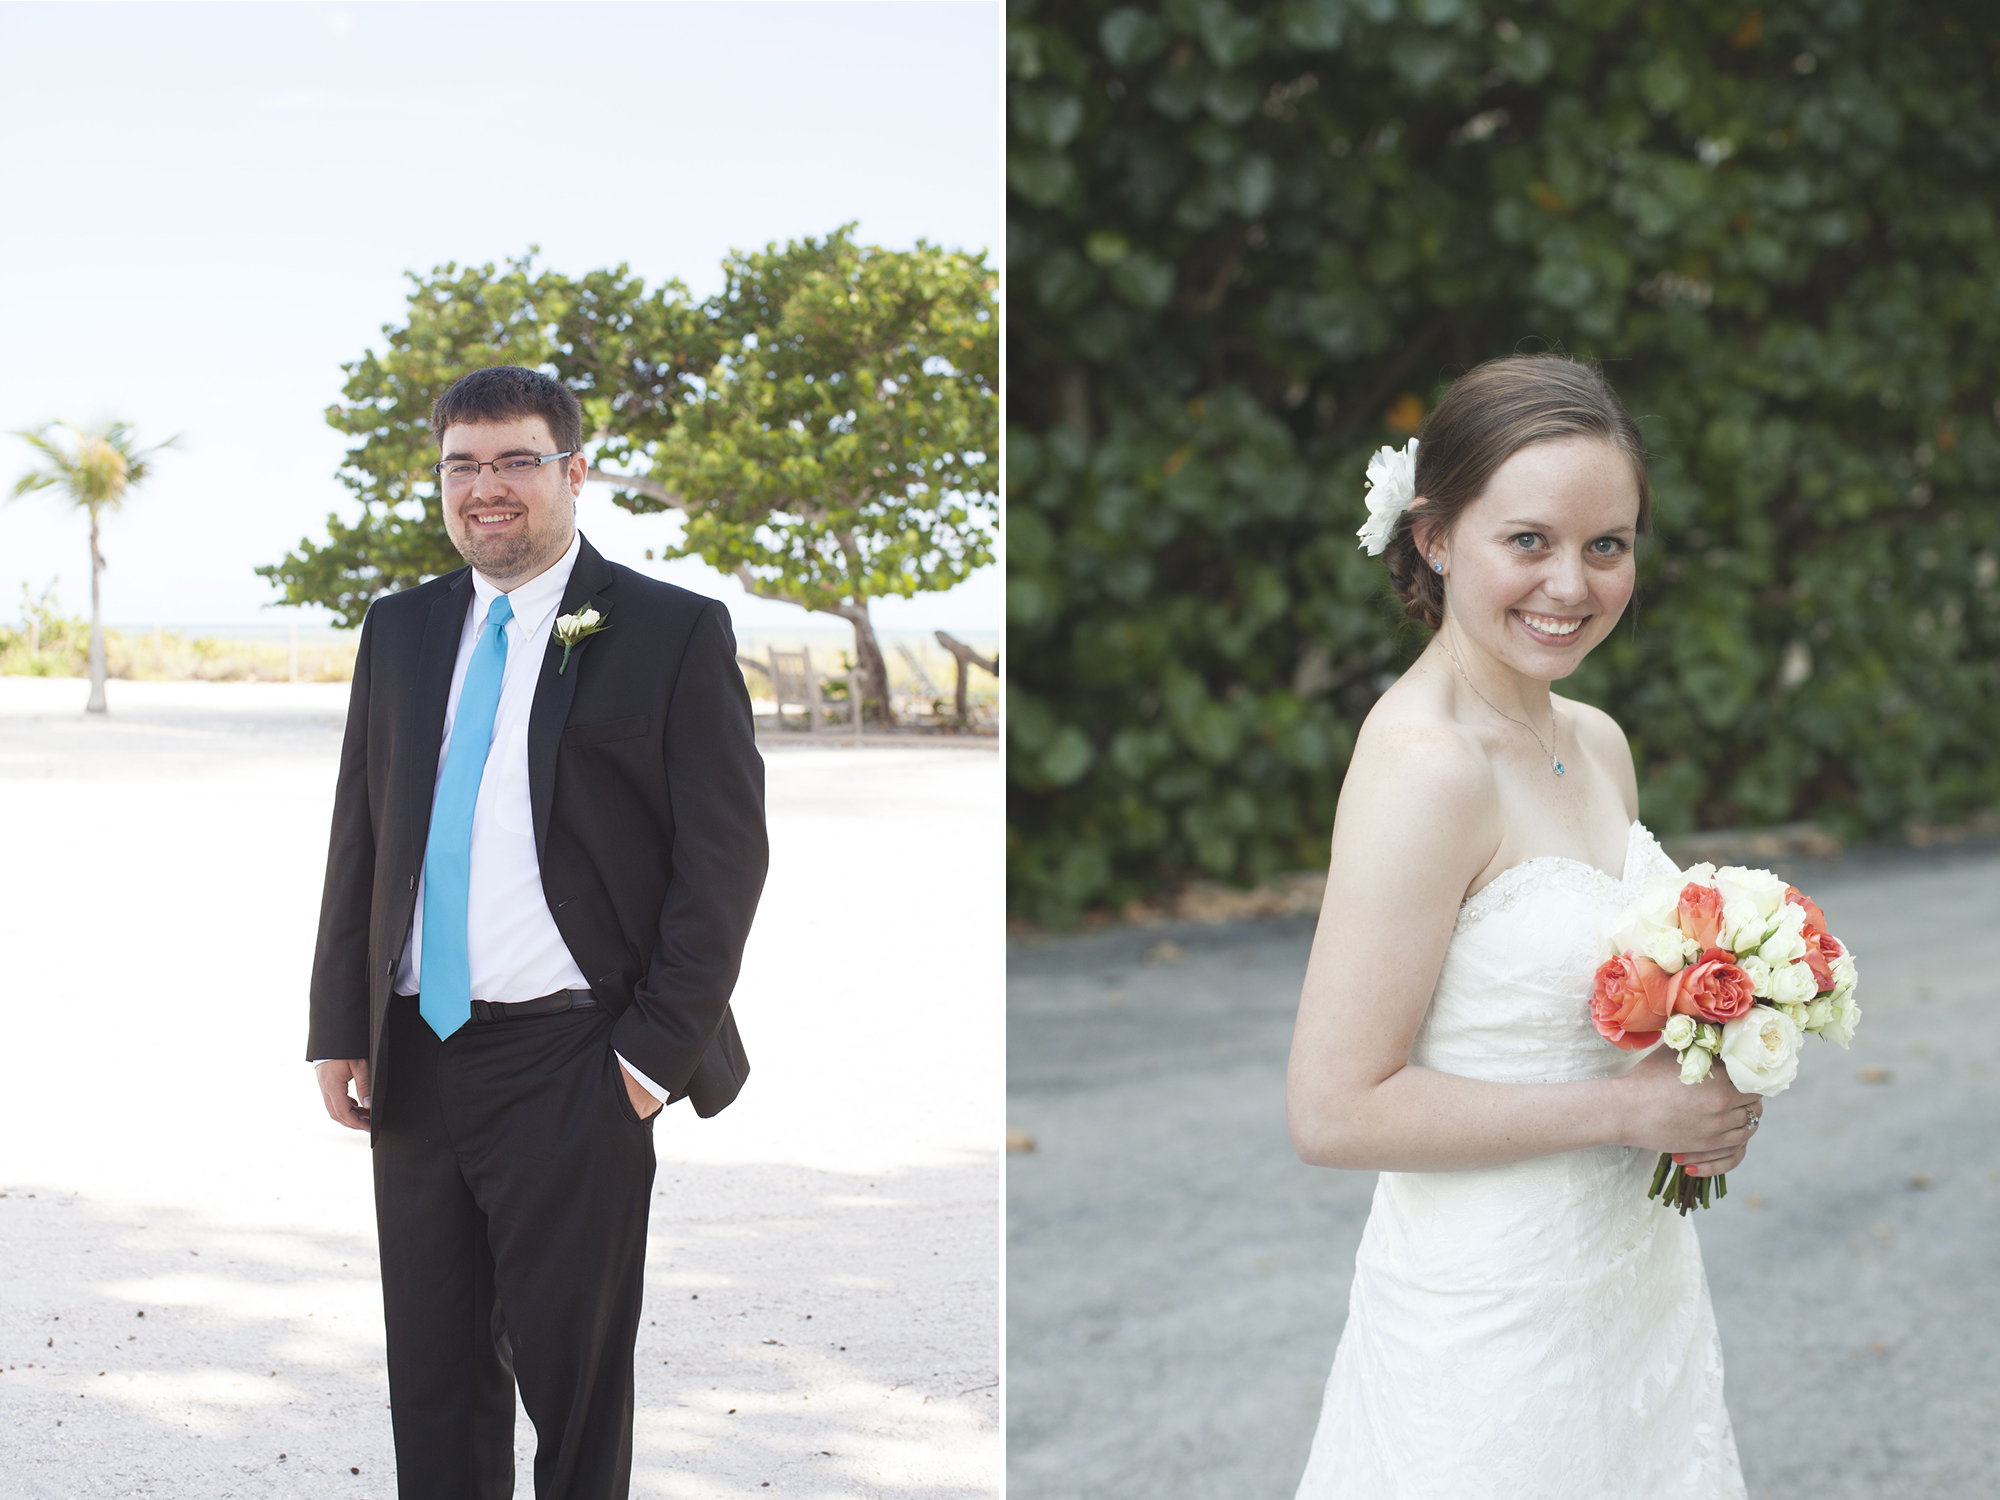 scott-kelsey-wedding-sanibel-island-inn-004